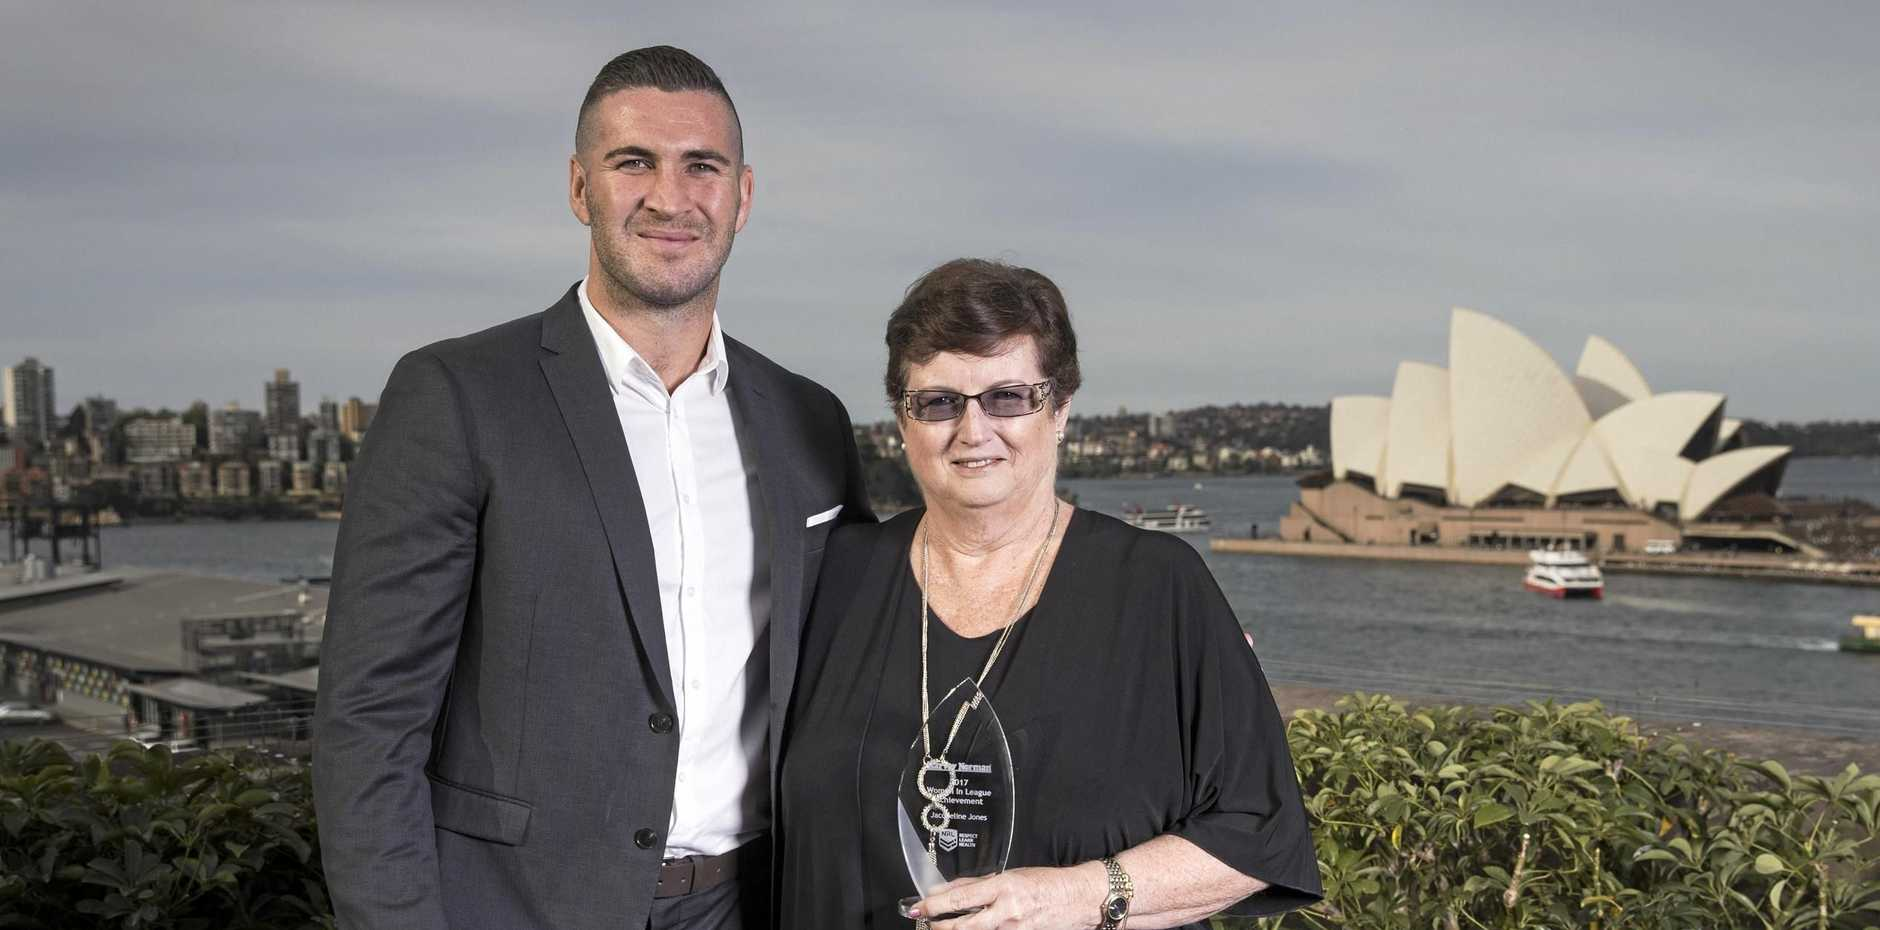 HUGE HONOUR: Jacquie at the awards with Ken Stephen medal nominee and St George Illawarra Dragons forward Joel Thompson.